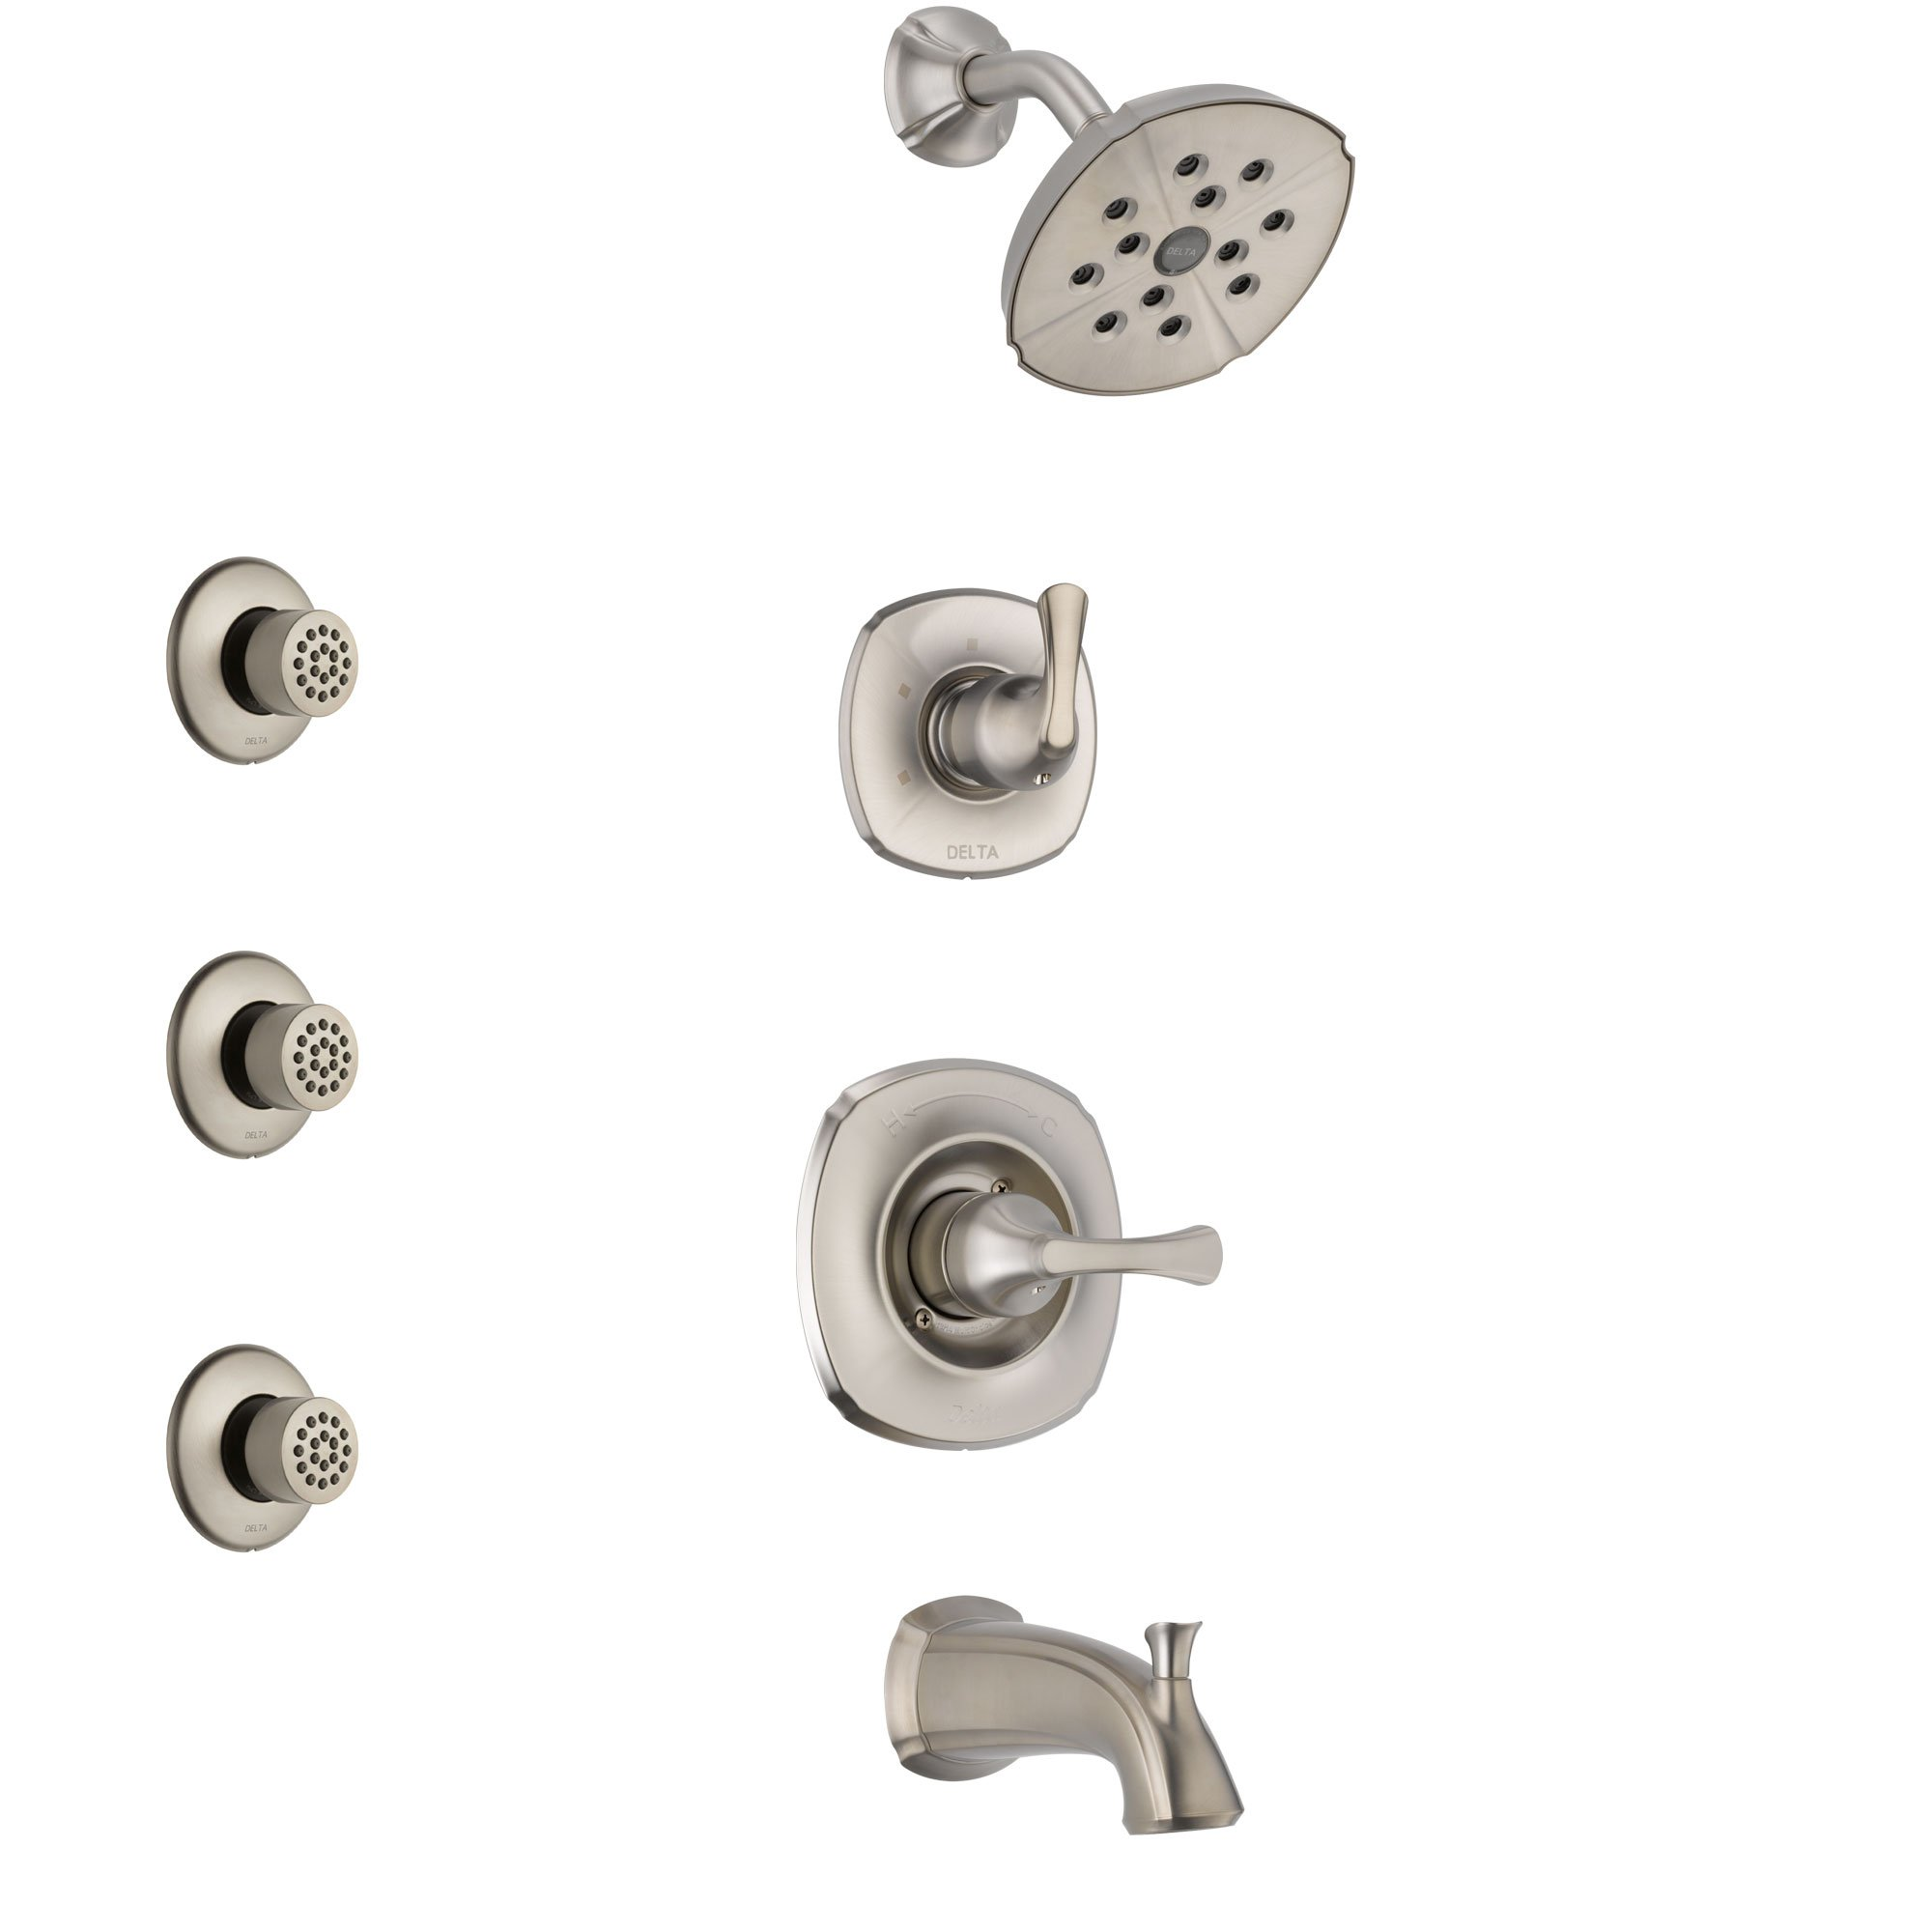 Delta Addison Stainless Steel Finish Tub And Shower System With Control Handle 3 Setting Diverter Showerhead And 3 Body Sprays Ss14492ss2 Shower Systems Shower Heads Body Spray